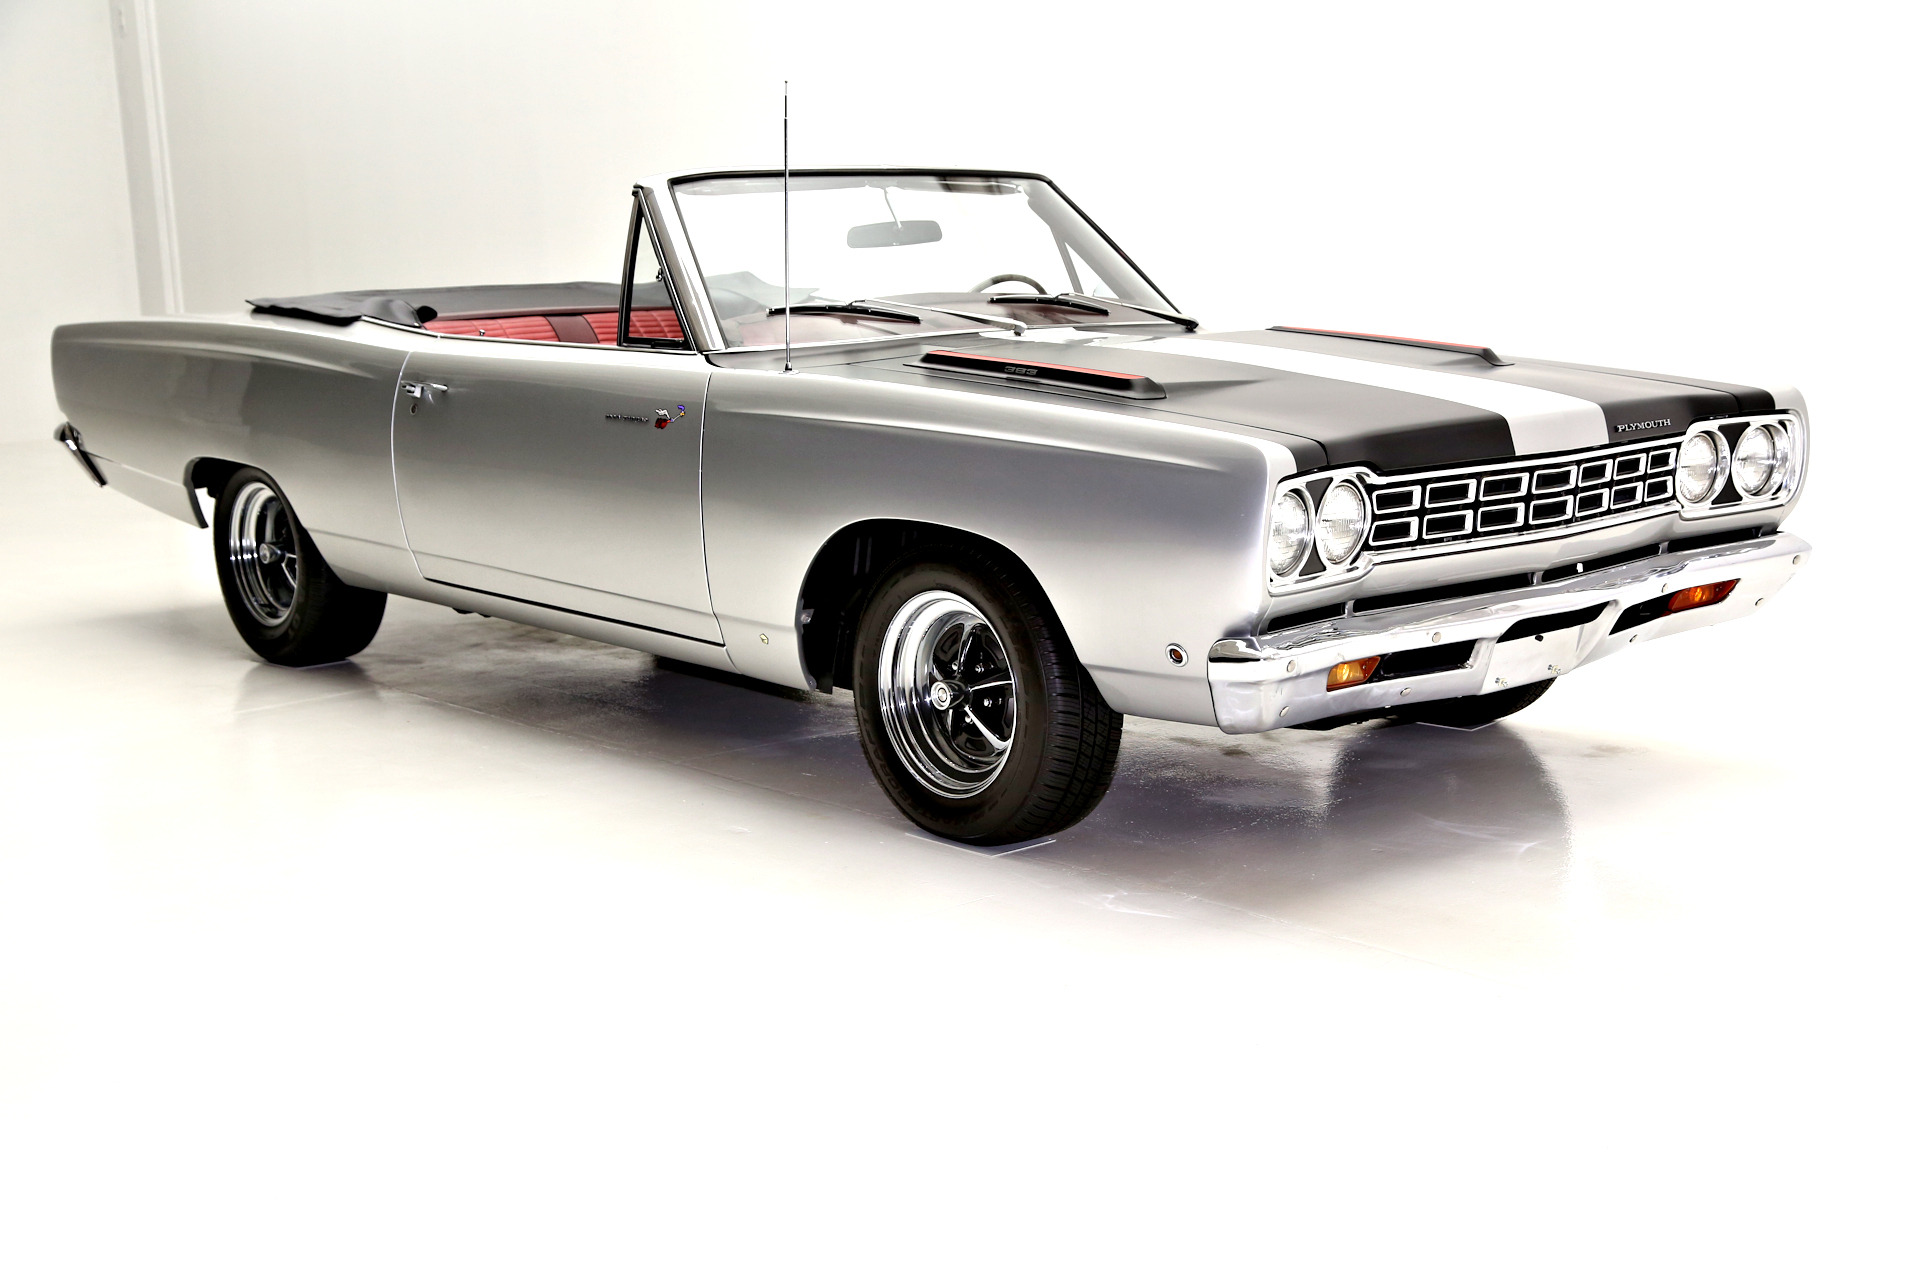 For Sale Used 1968 Plymouth Satellite Road Runner options | American Dream Machines Des Moines IA 50309